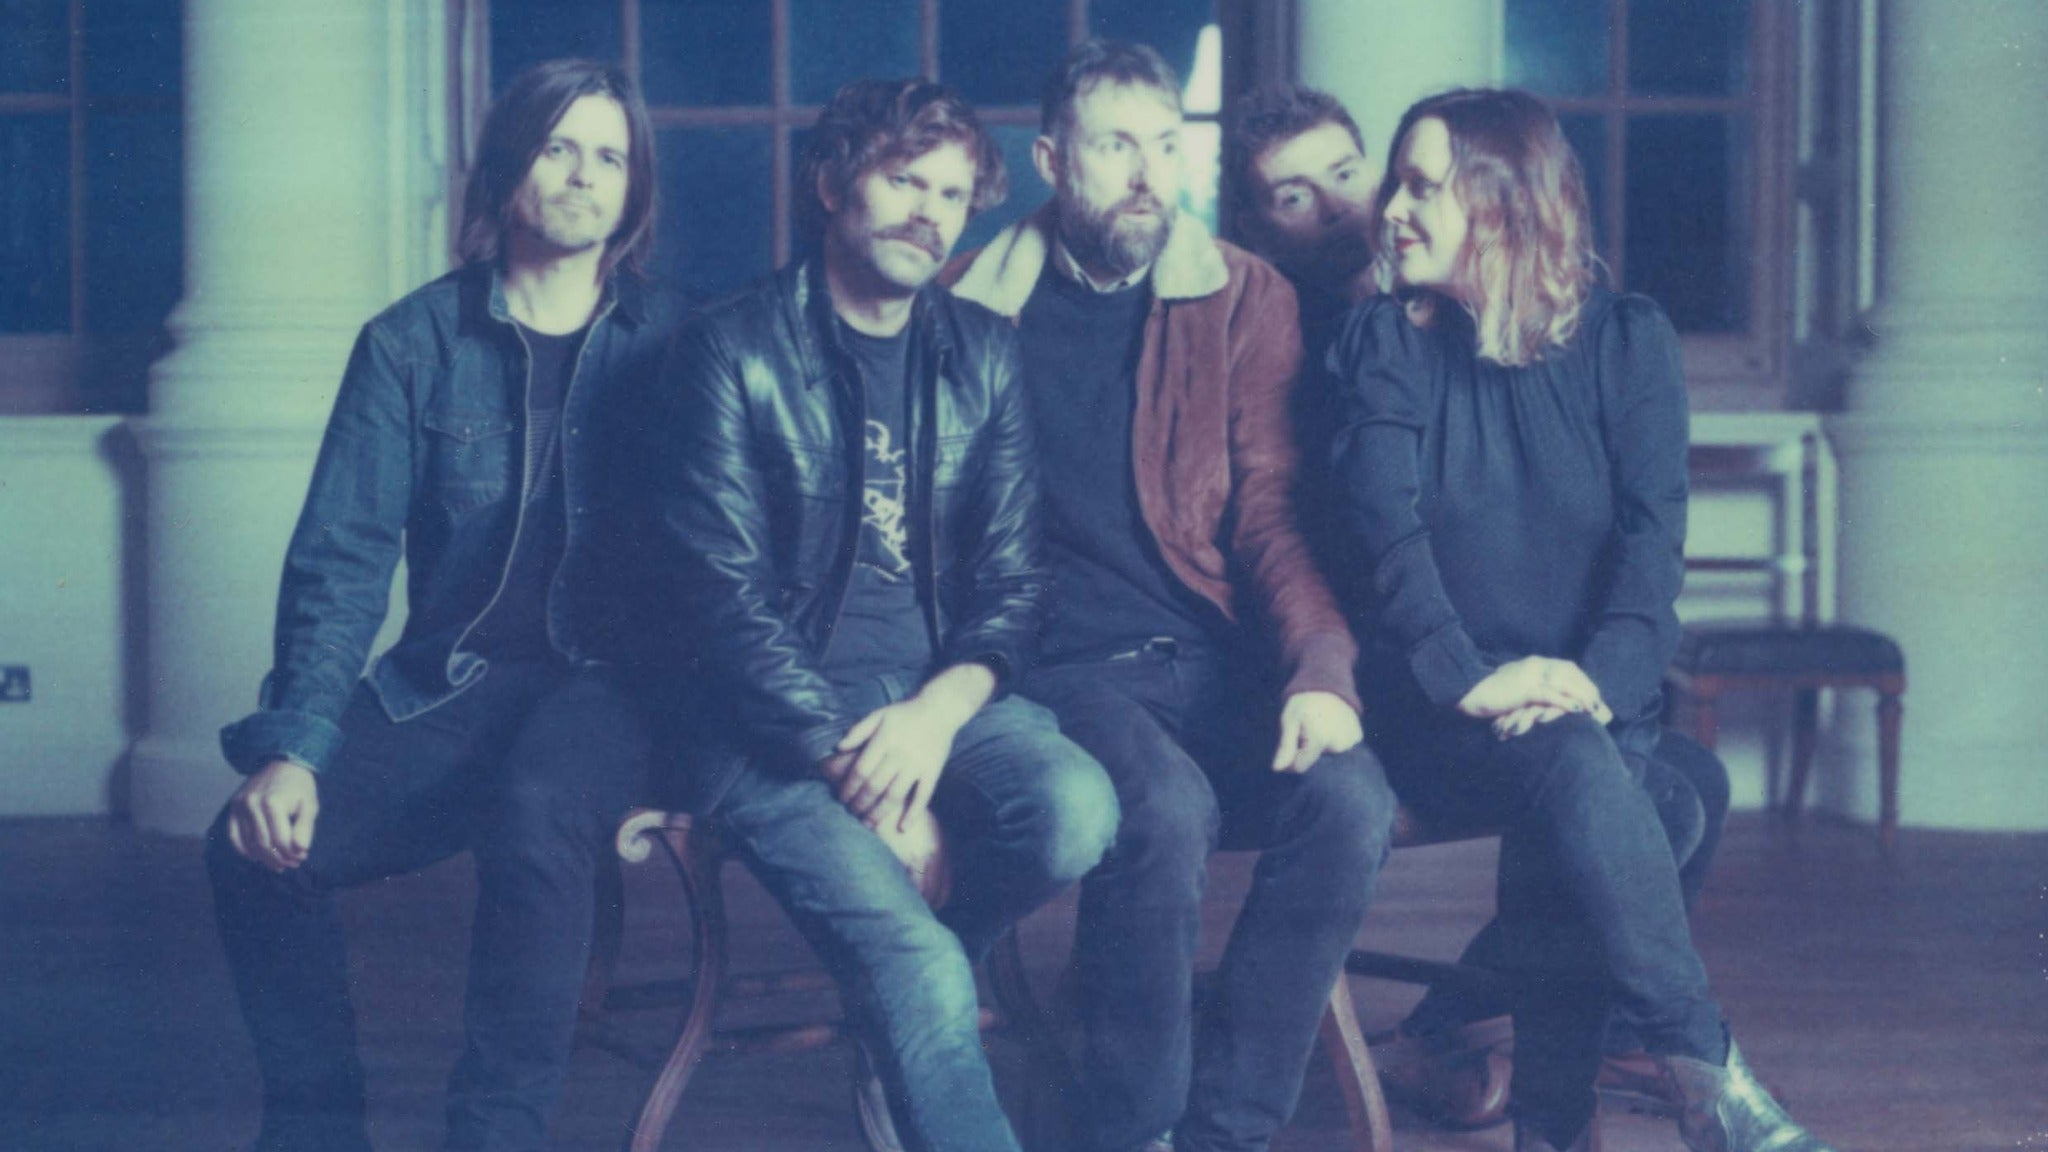 89.9 KCRW Presents:Slowdive at The Wiltern